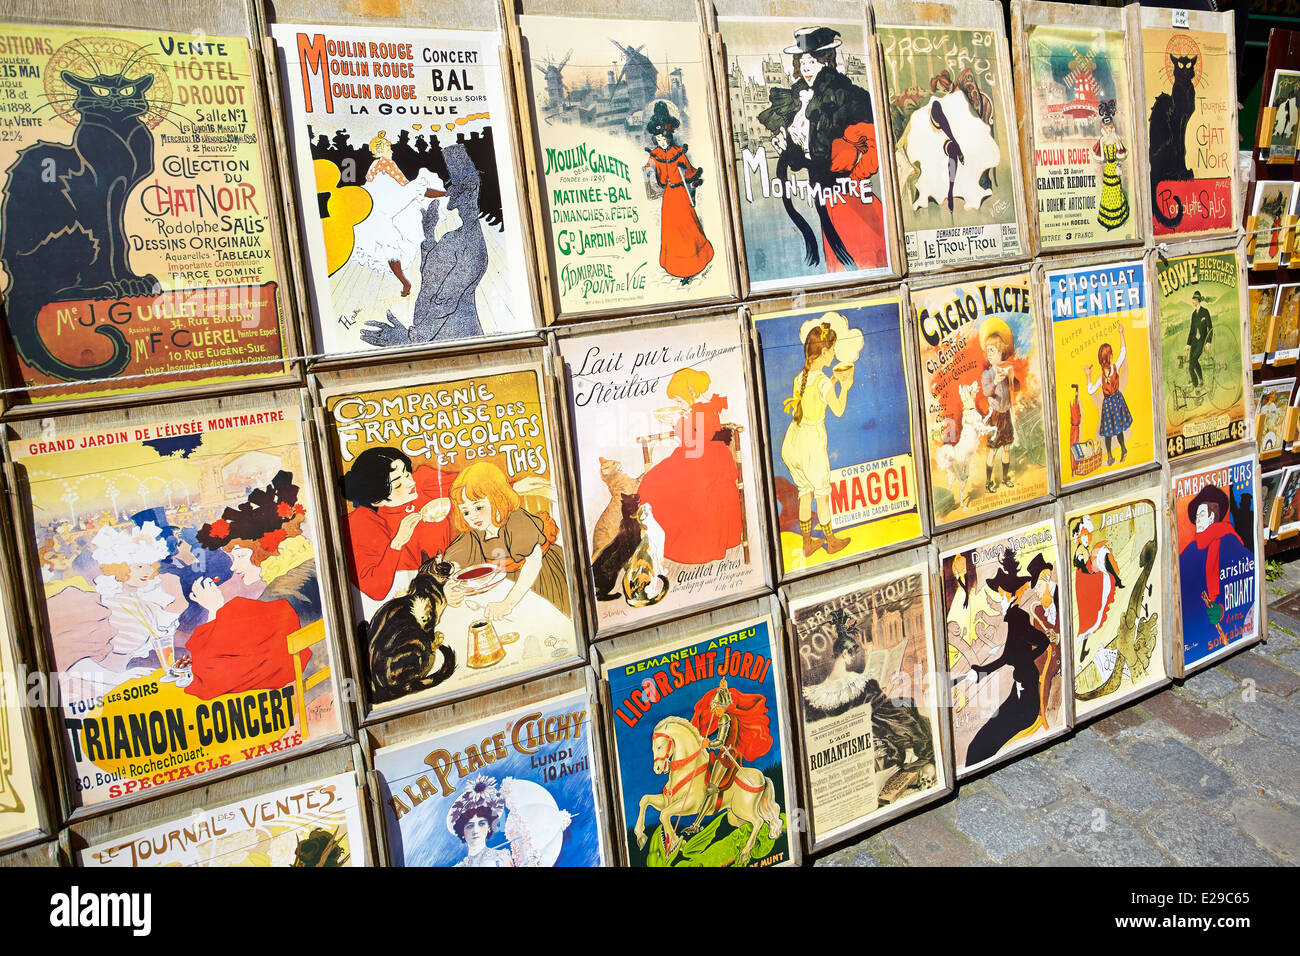 Reproduction of old posters, Montmartre District, Paris, France - Stock Image